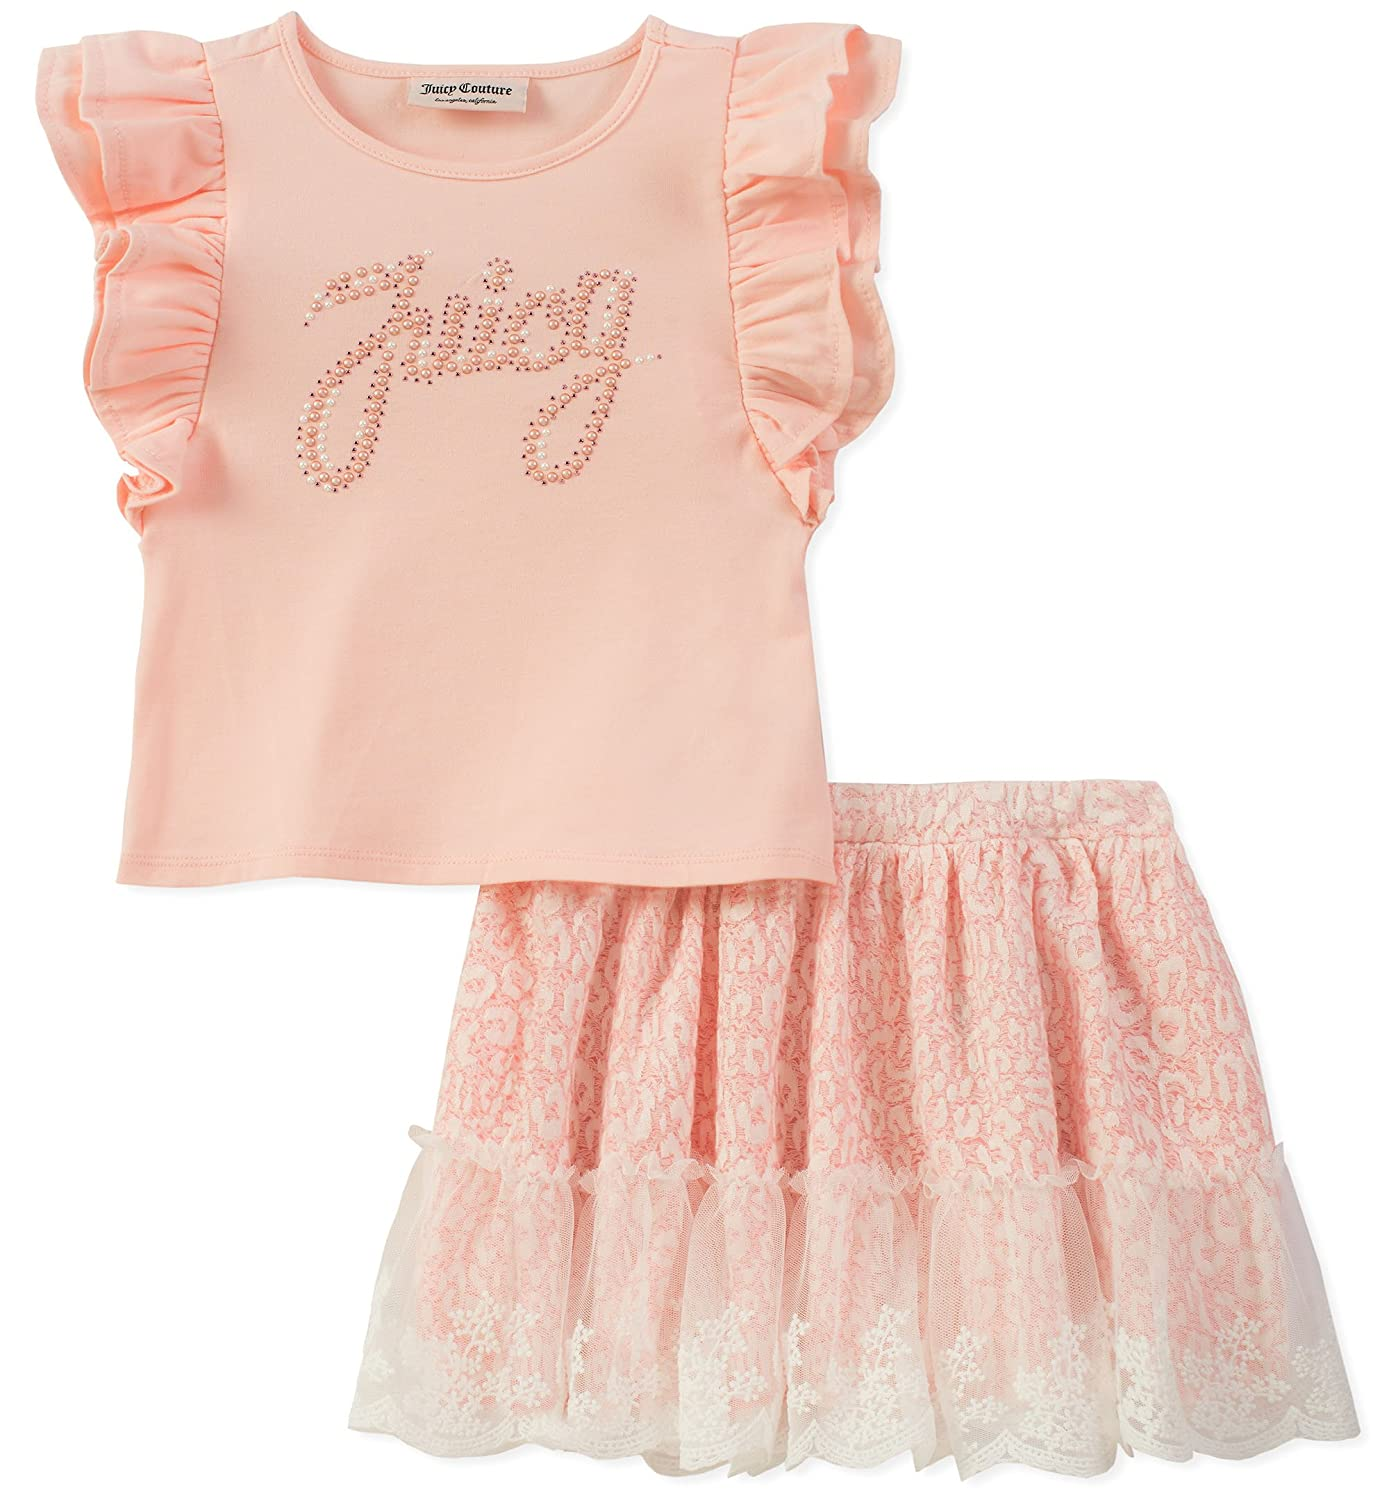 2f2311f57 Amazon.com  Juicy Couture Baby Girls Scooter Set  Clothing